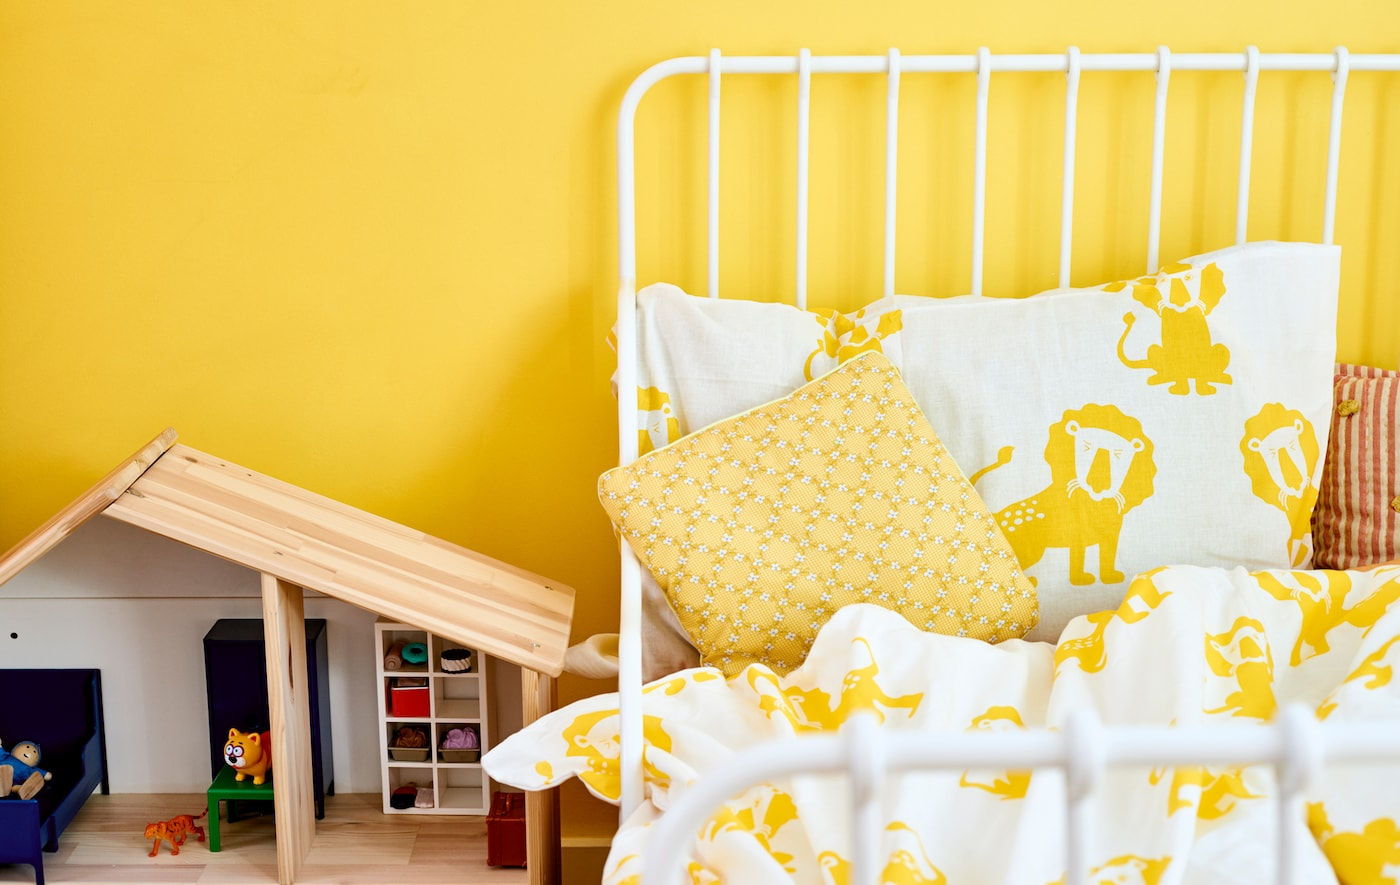 A white bed frame with yellow and white lion print bedding against a yellow wall, next to a wooden doll's house.